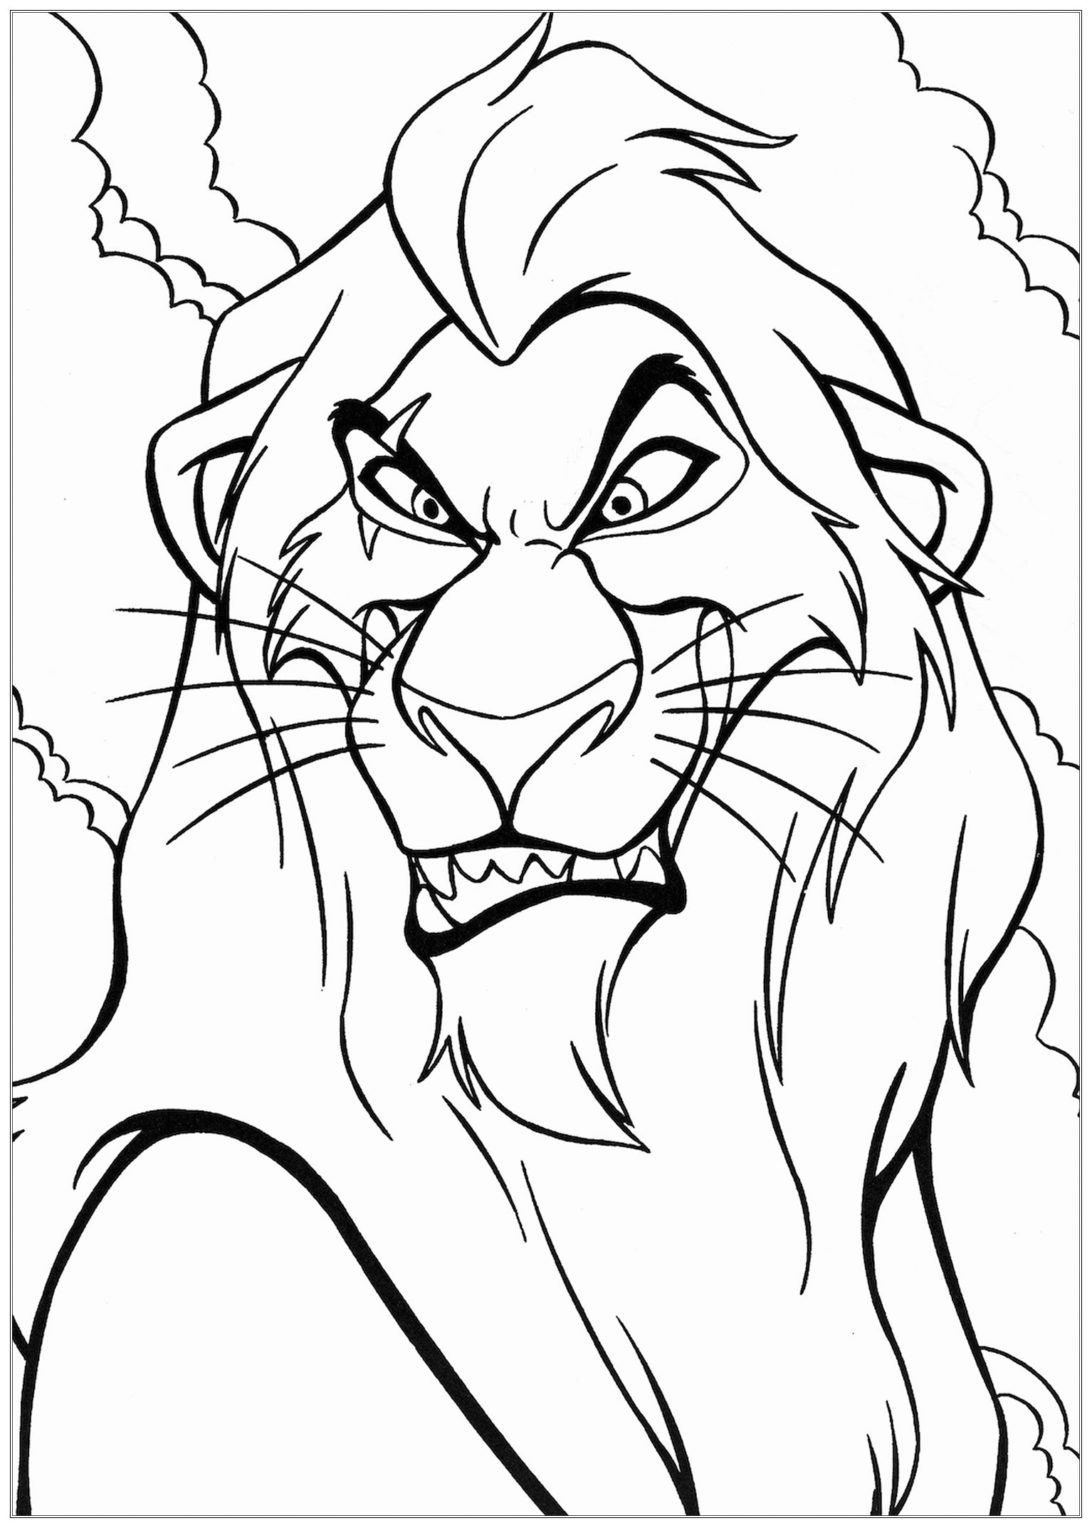 Lion Coloring Pages For Kids Coloring Pages The Lion Free To Color For Children Lion Coloring Pages King Coloring Book Disney Coloring Pages